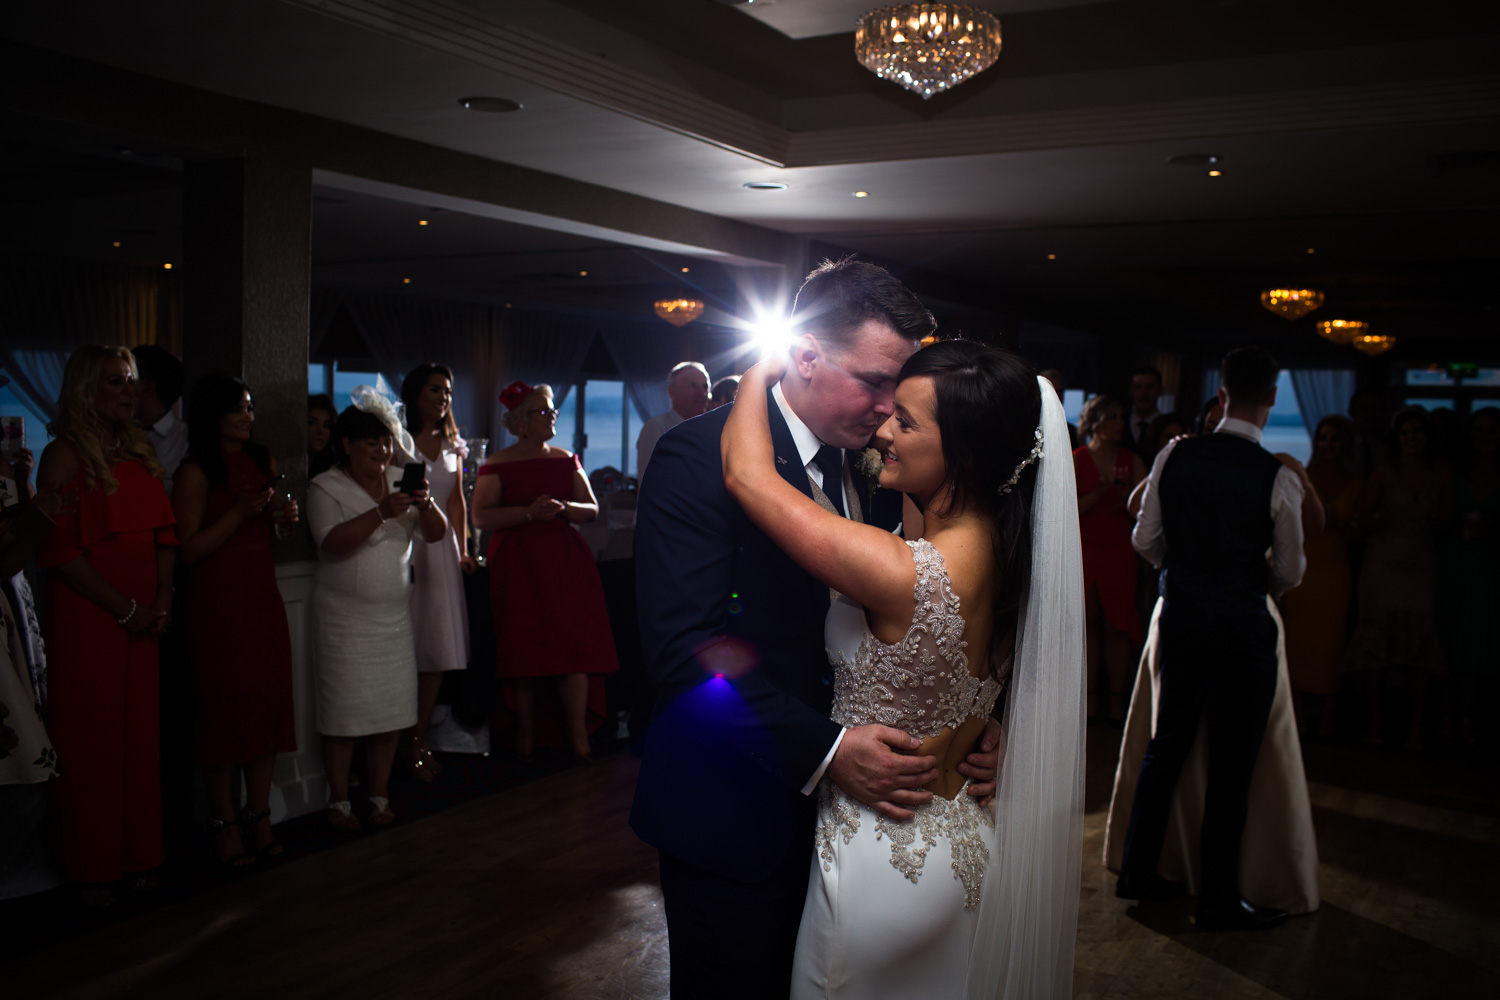 Mark_Barnes_Northern_Ireland_wedding_photographer_redcastle_hotel_Donegal_Wedding_photography_Donegal_wedding_photographer-56.jpg